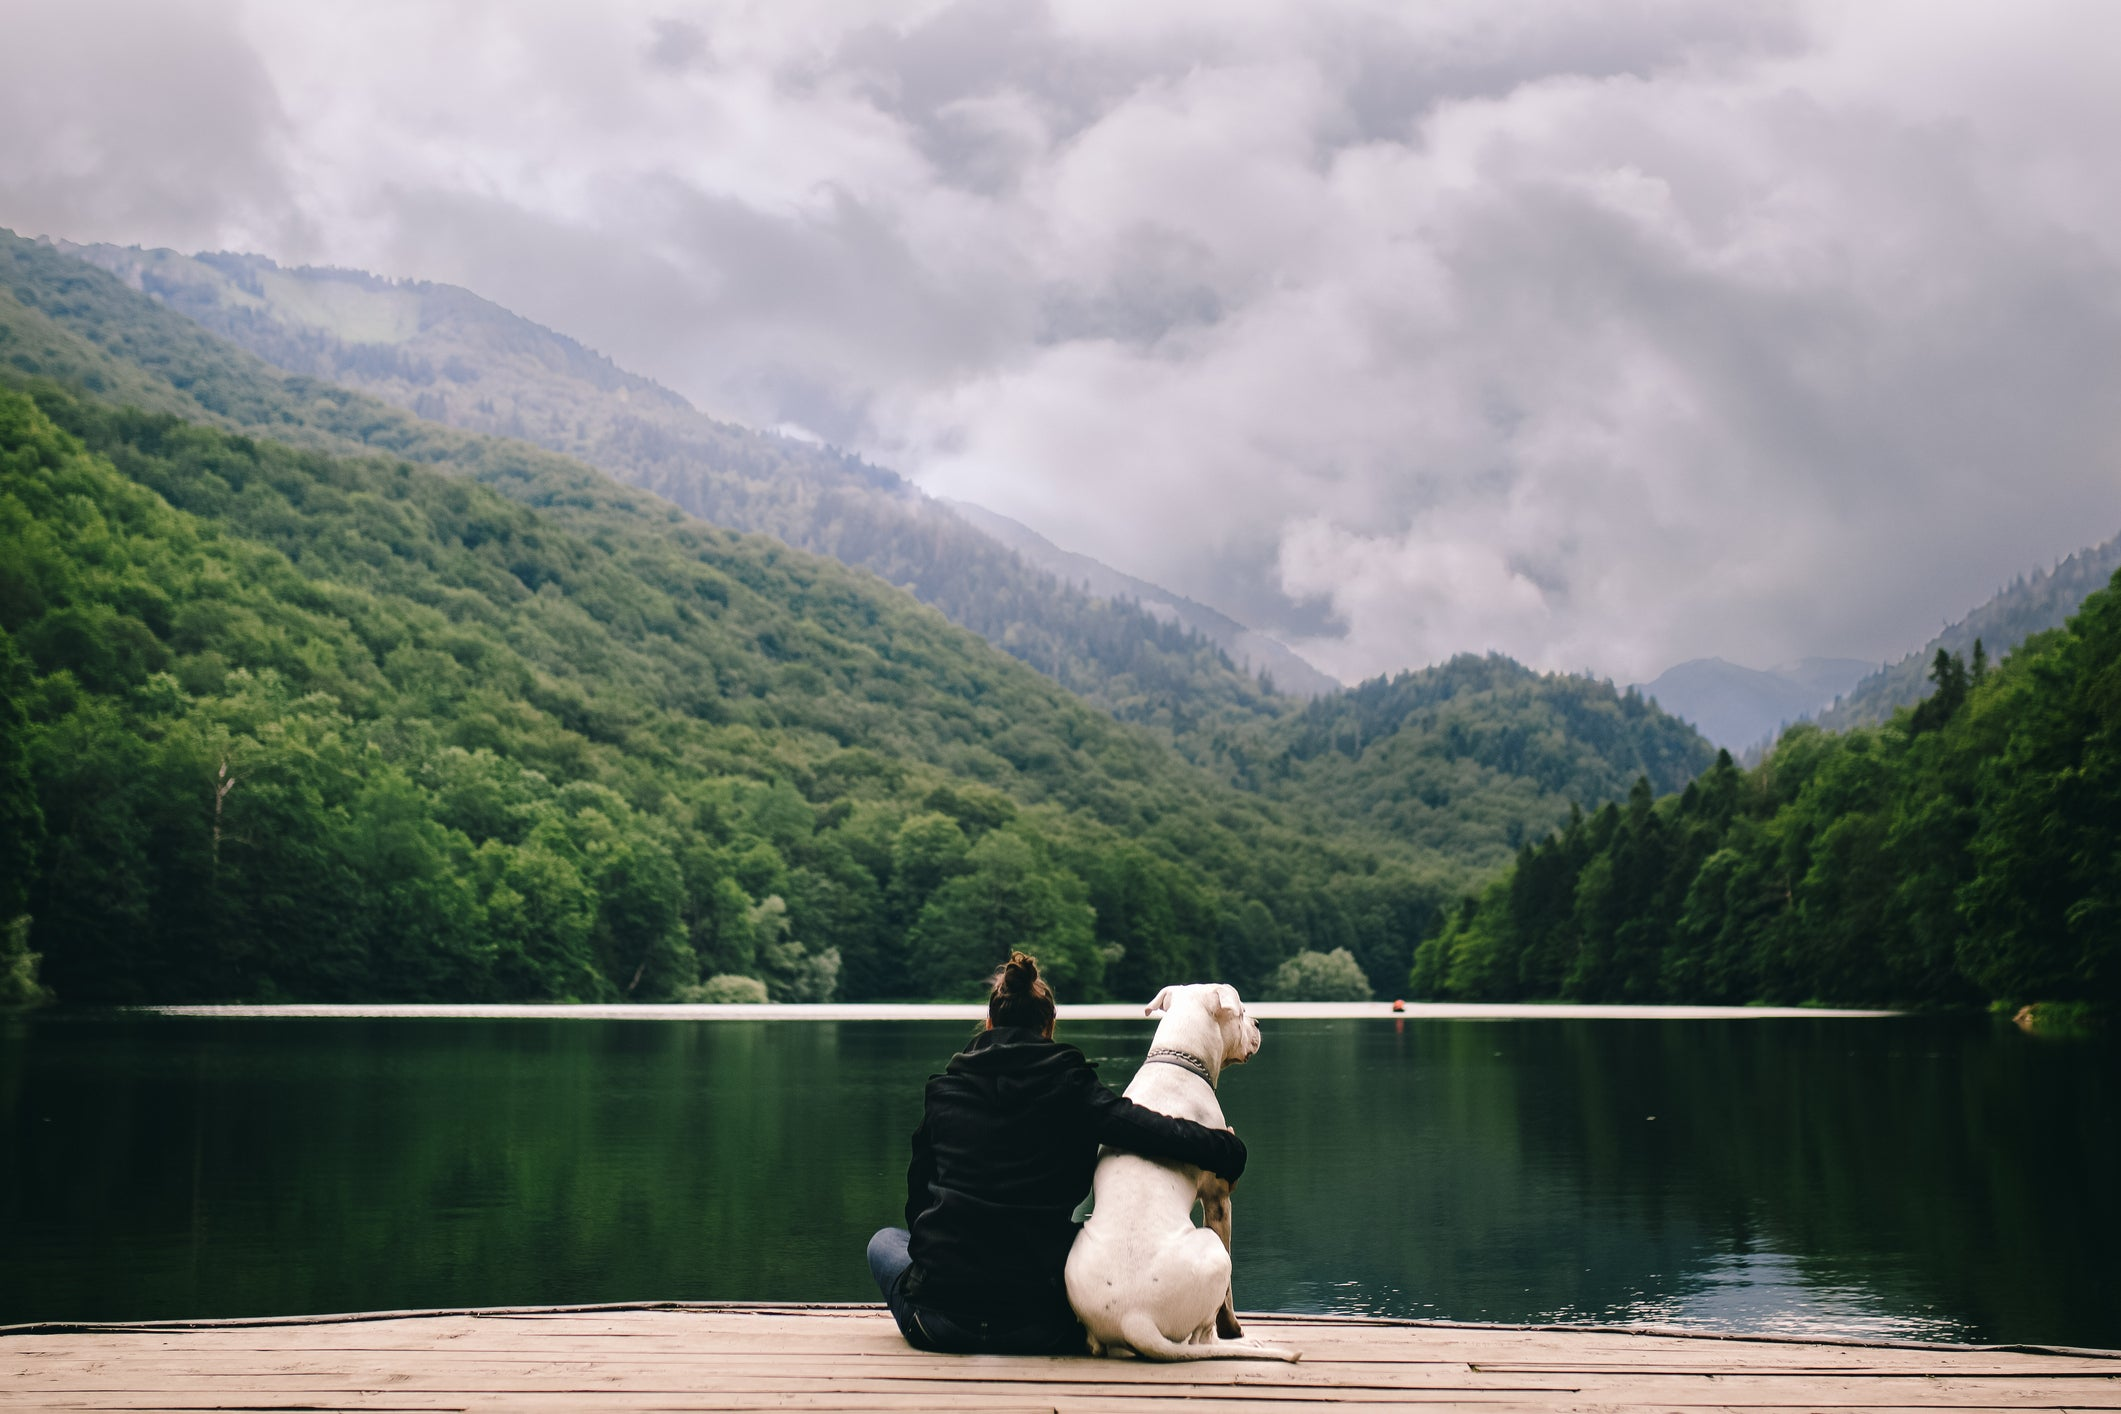 A woman with her arm around he dog sitting in front of a lake.